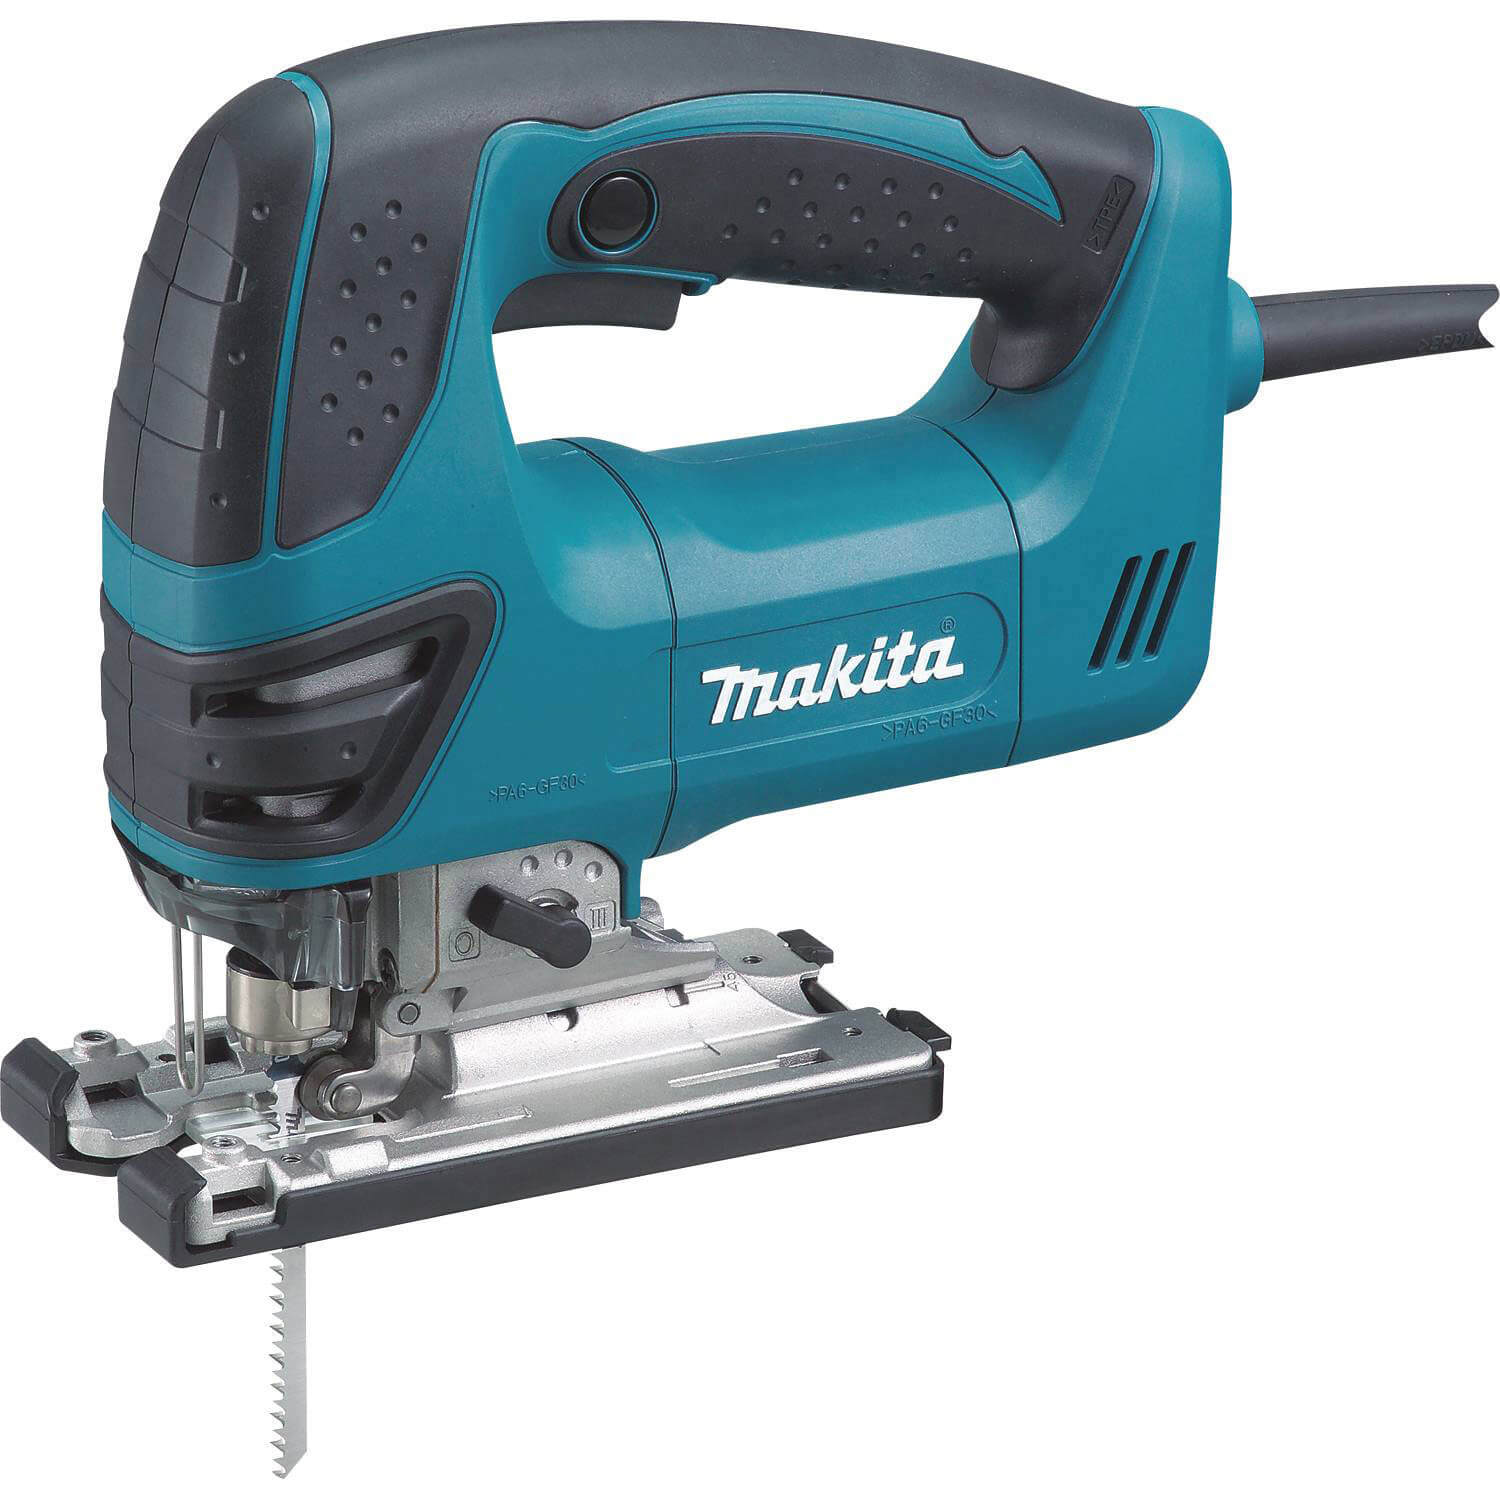 Makita 4350FCT Orbital Jigsaw with Job Light 720w 110v